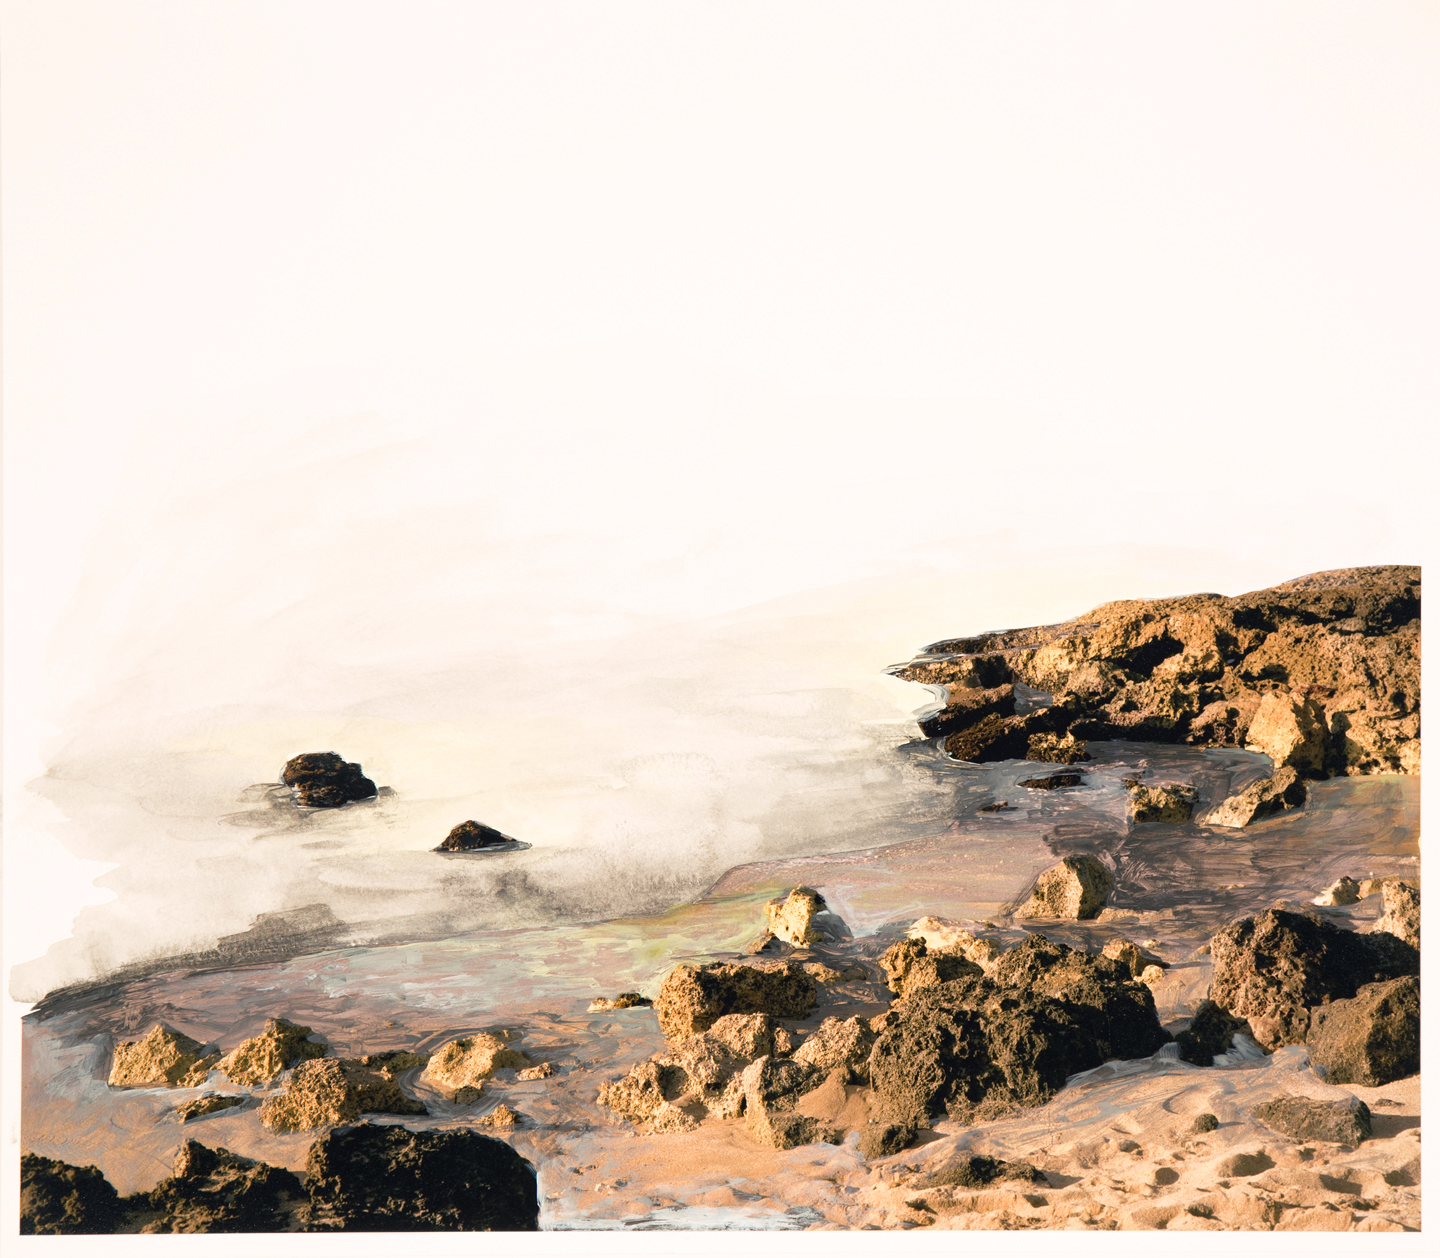 Low Tide, 2016  18 x 20-3/4 inches  Acrylic and C-print on paper